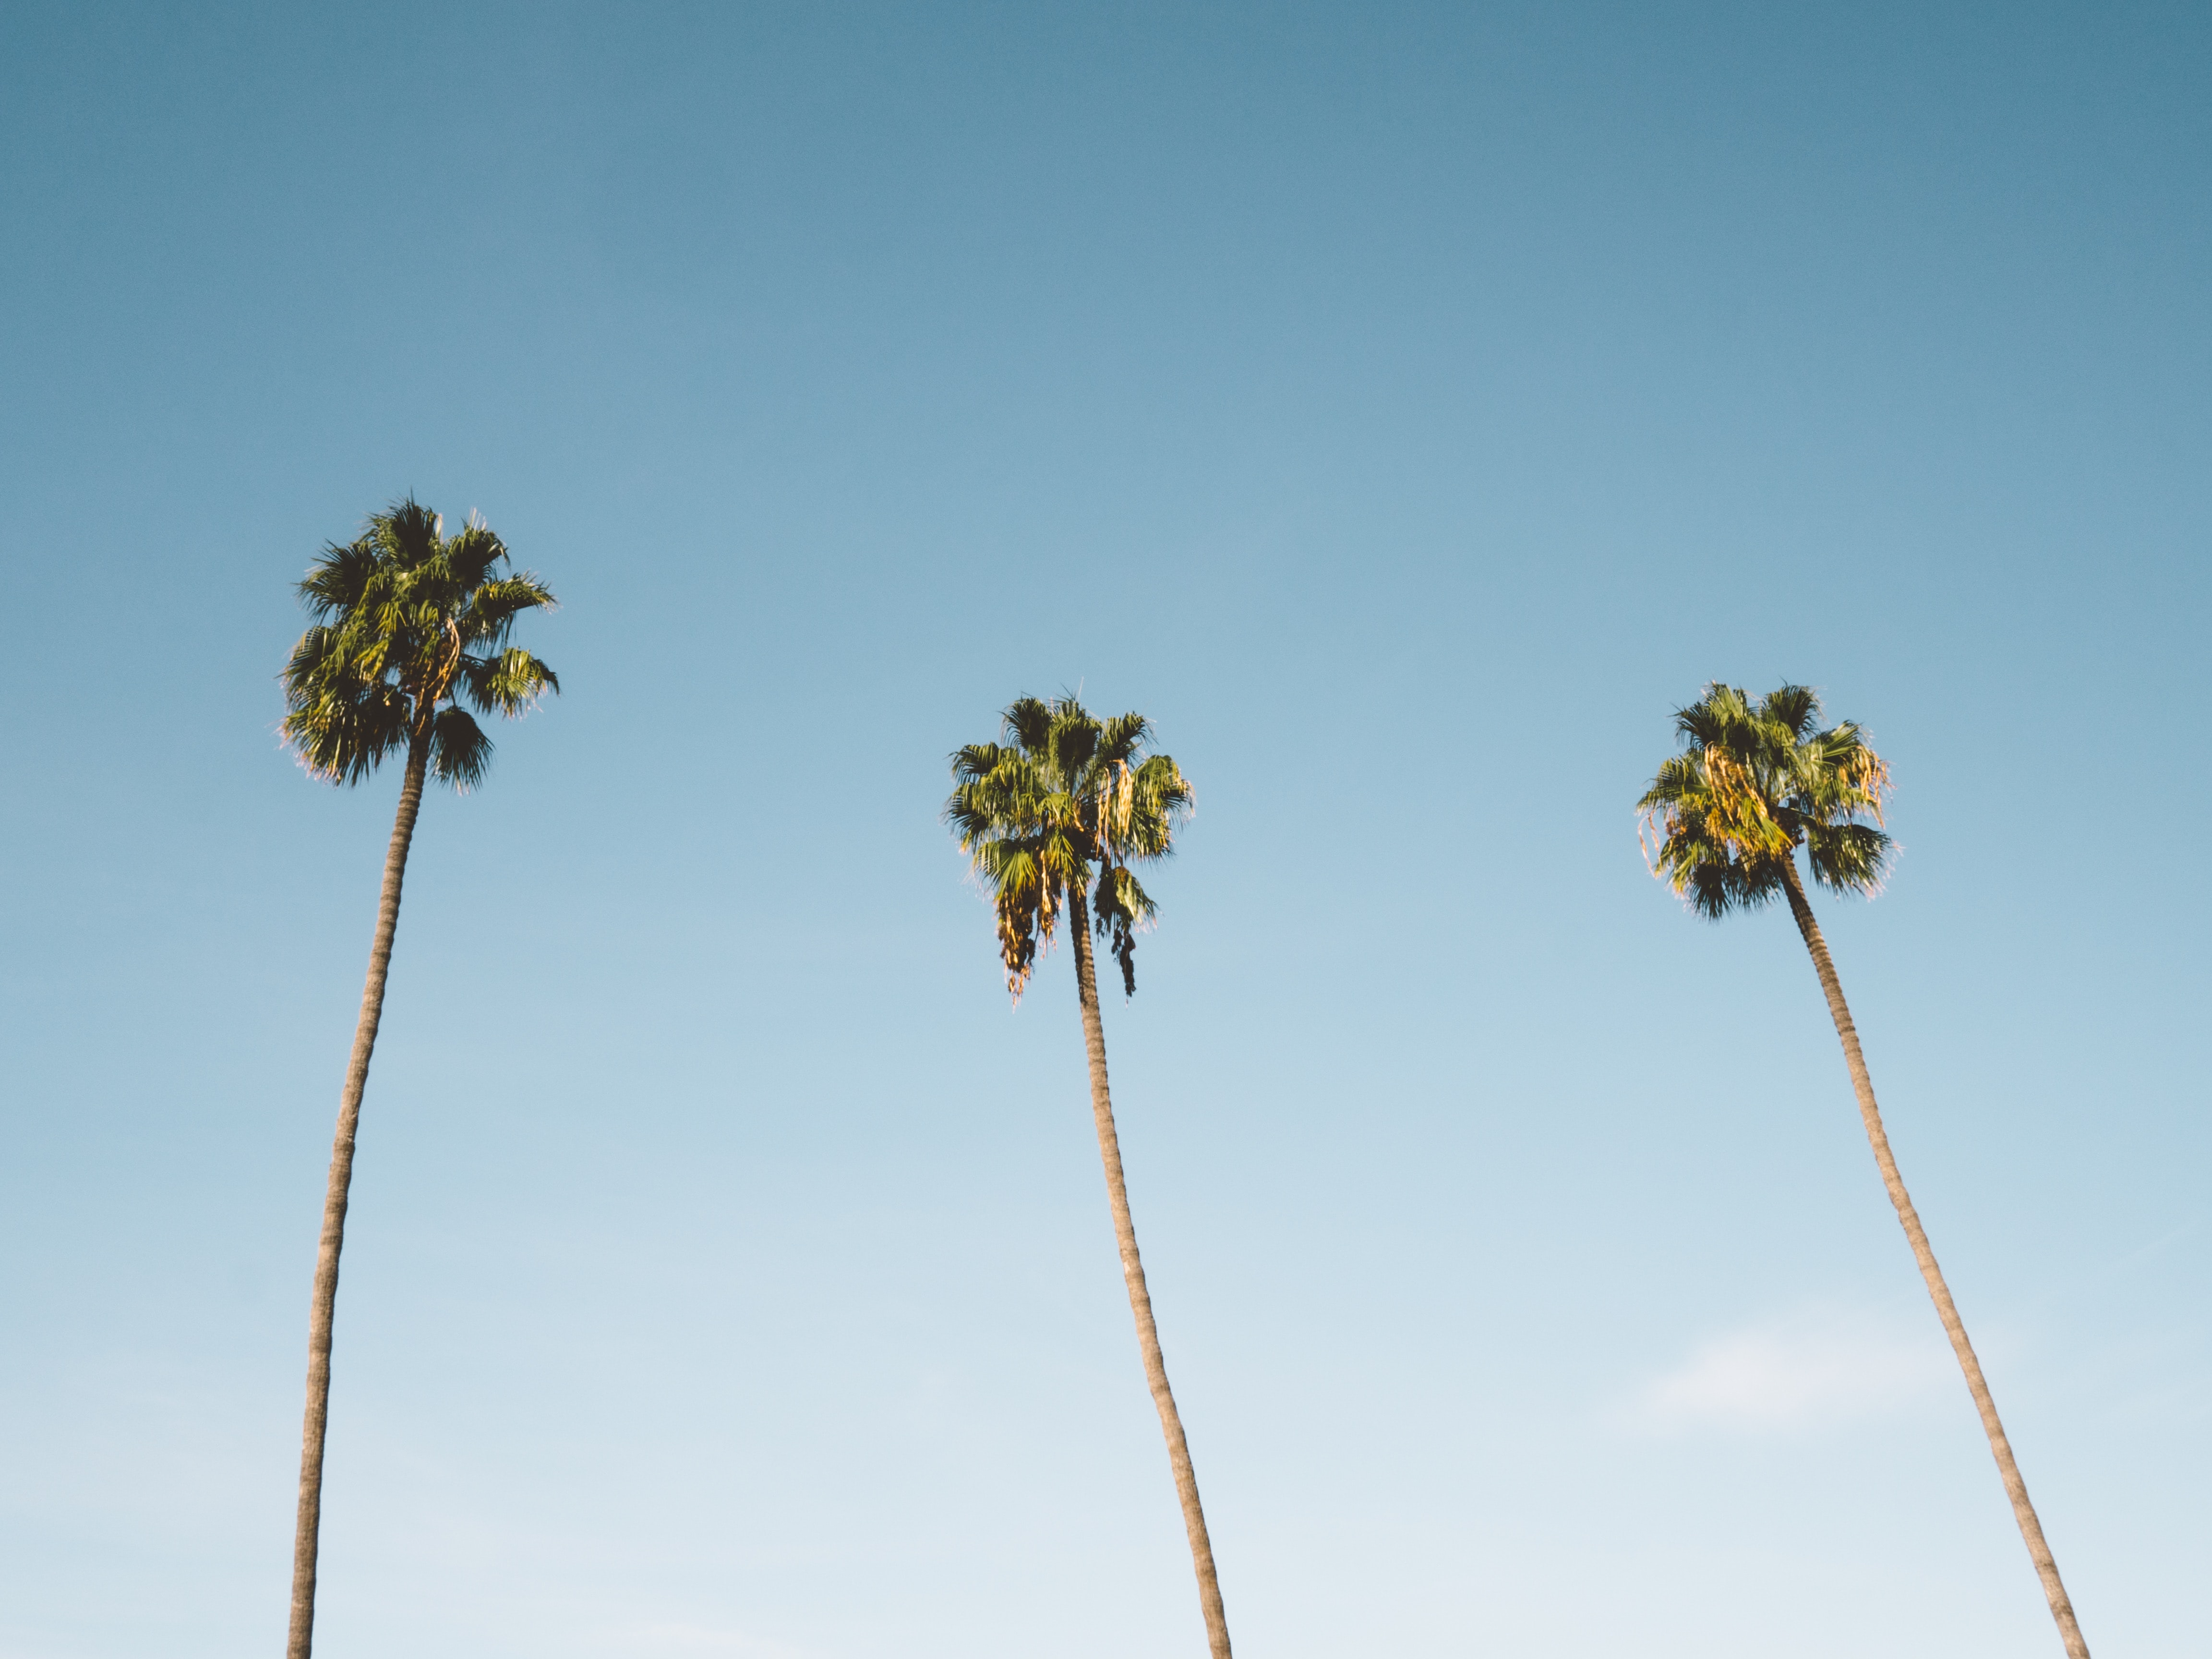 Three palm trees against the sky in San Diego